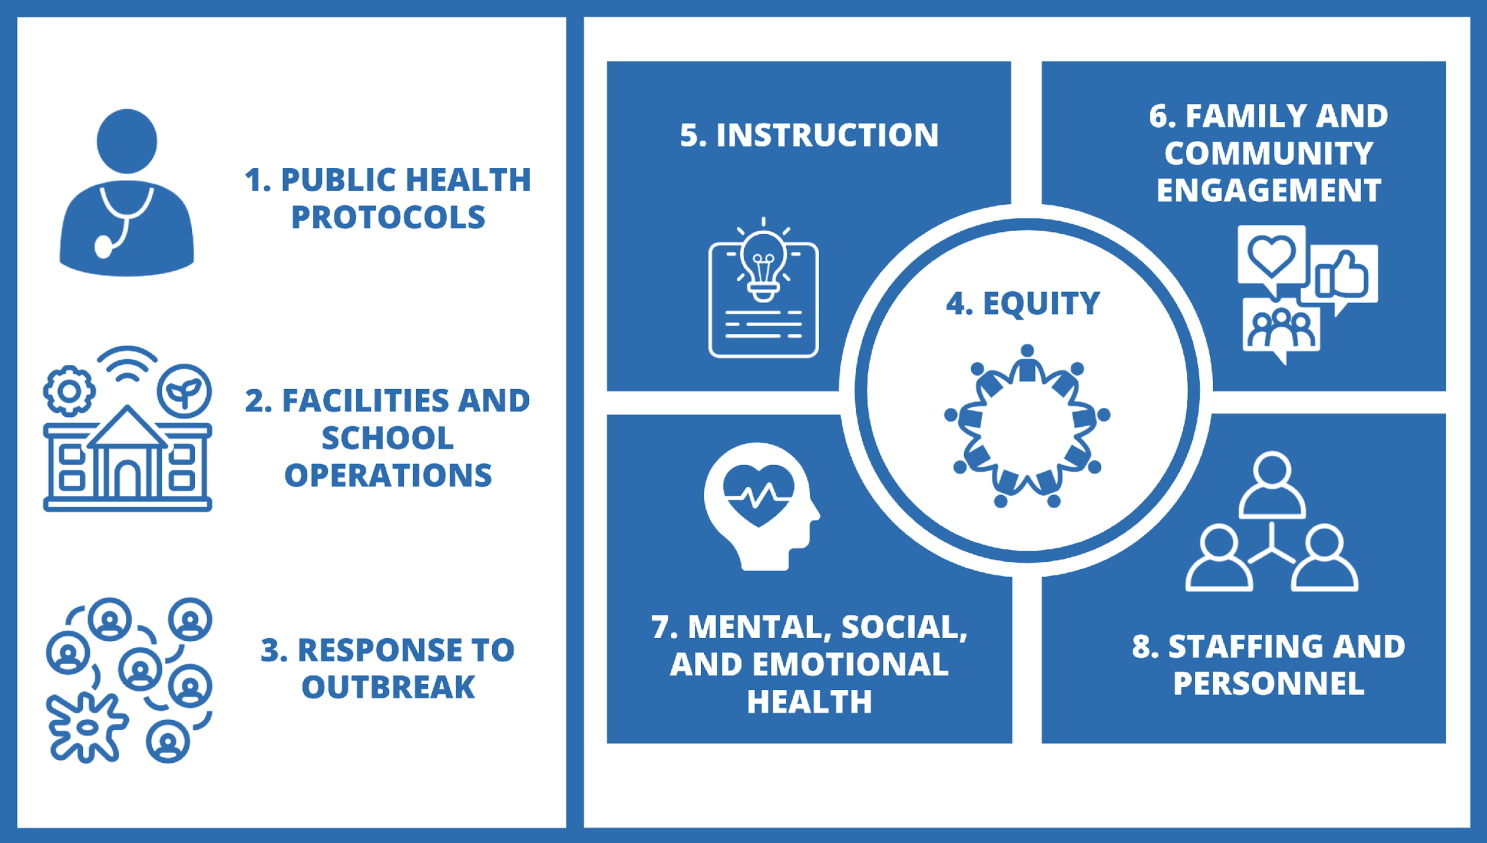 Oregon Department of Education, Ready Schools Safe Learners: Operational Blueprint for Reentry must address 8 key areas: Public health protocols, facilities and school operations, response to outbreak, instruction, equity, family and community engagement, mental social and emotional health, and staffing and personnel.